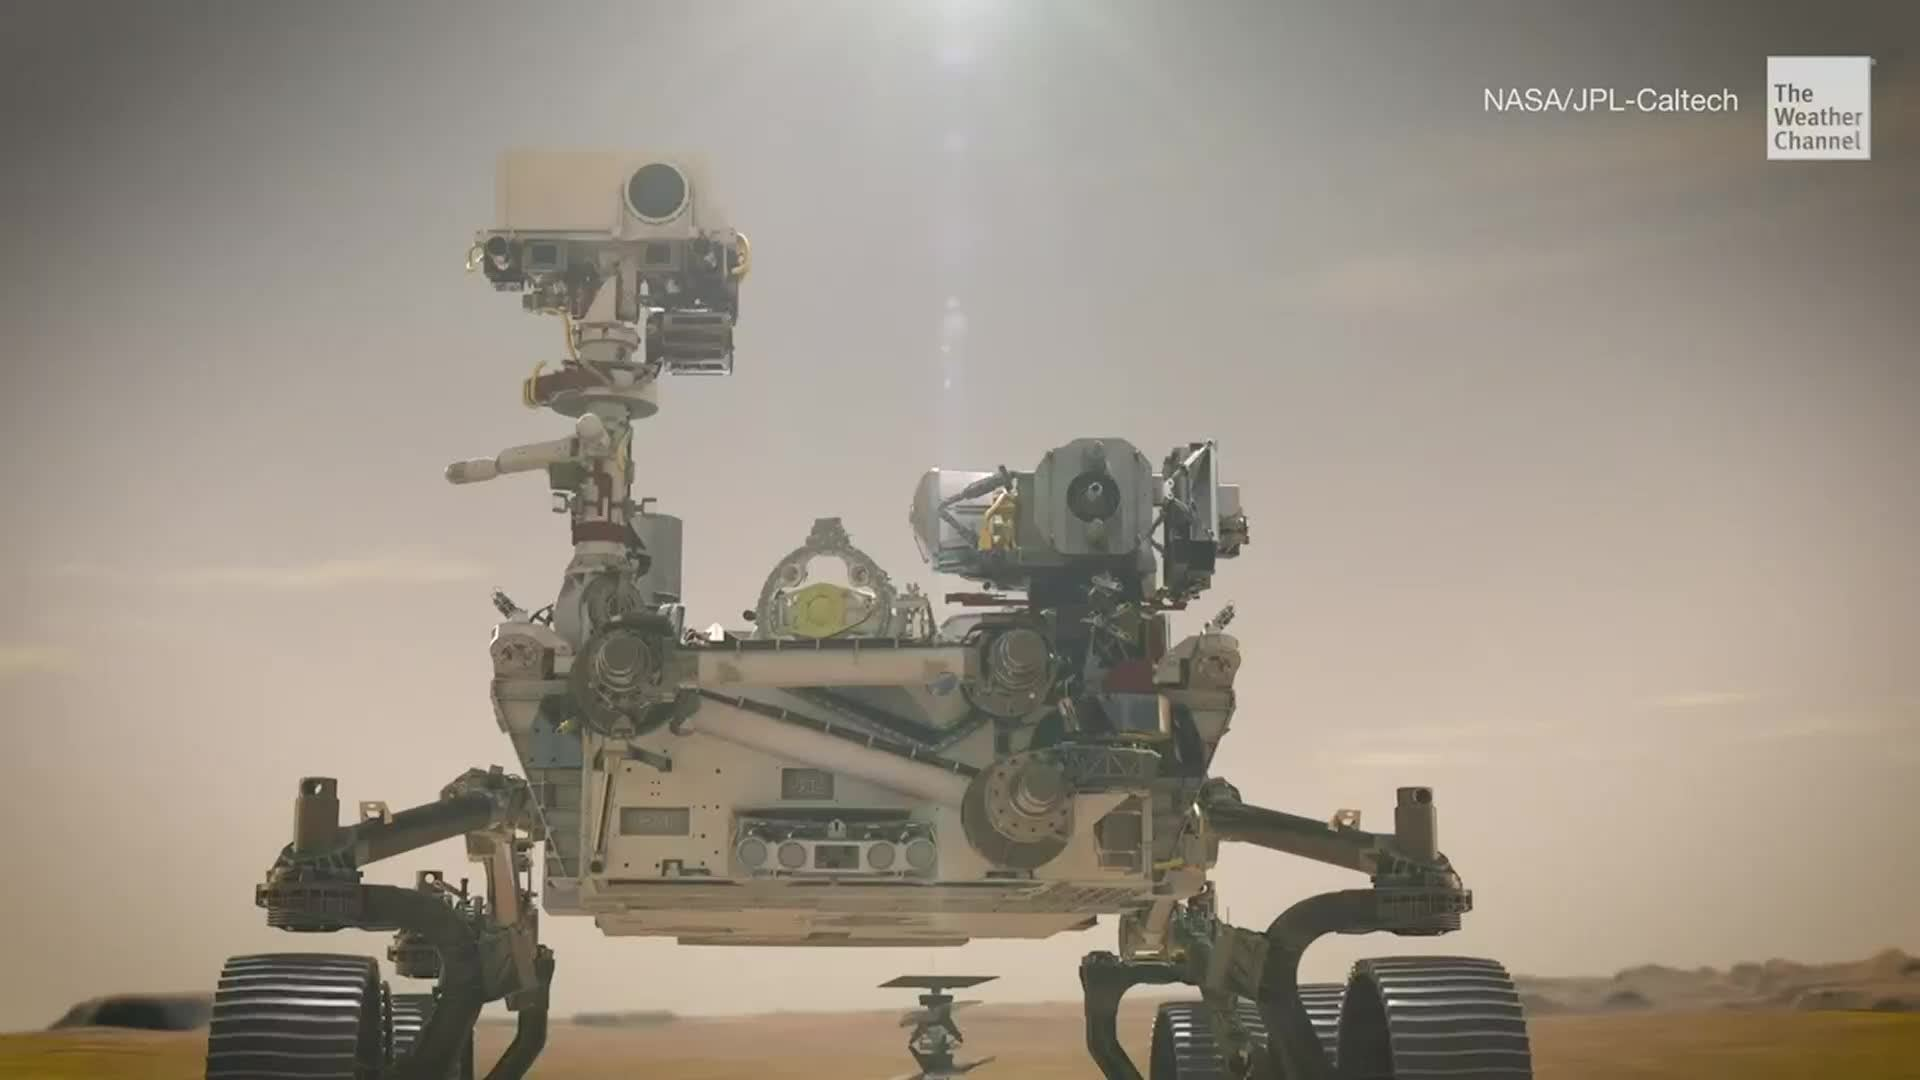 Mini Helicopter Could Be First Vehicle to Take Flight on Mars! - Videos from The Weather Channel   weather.com